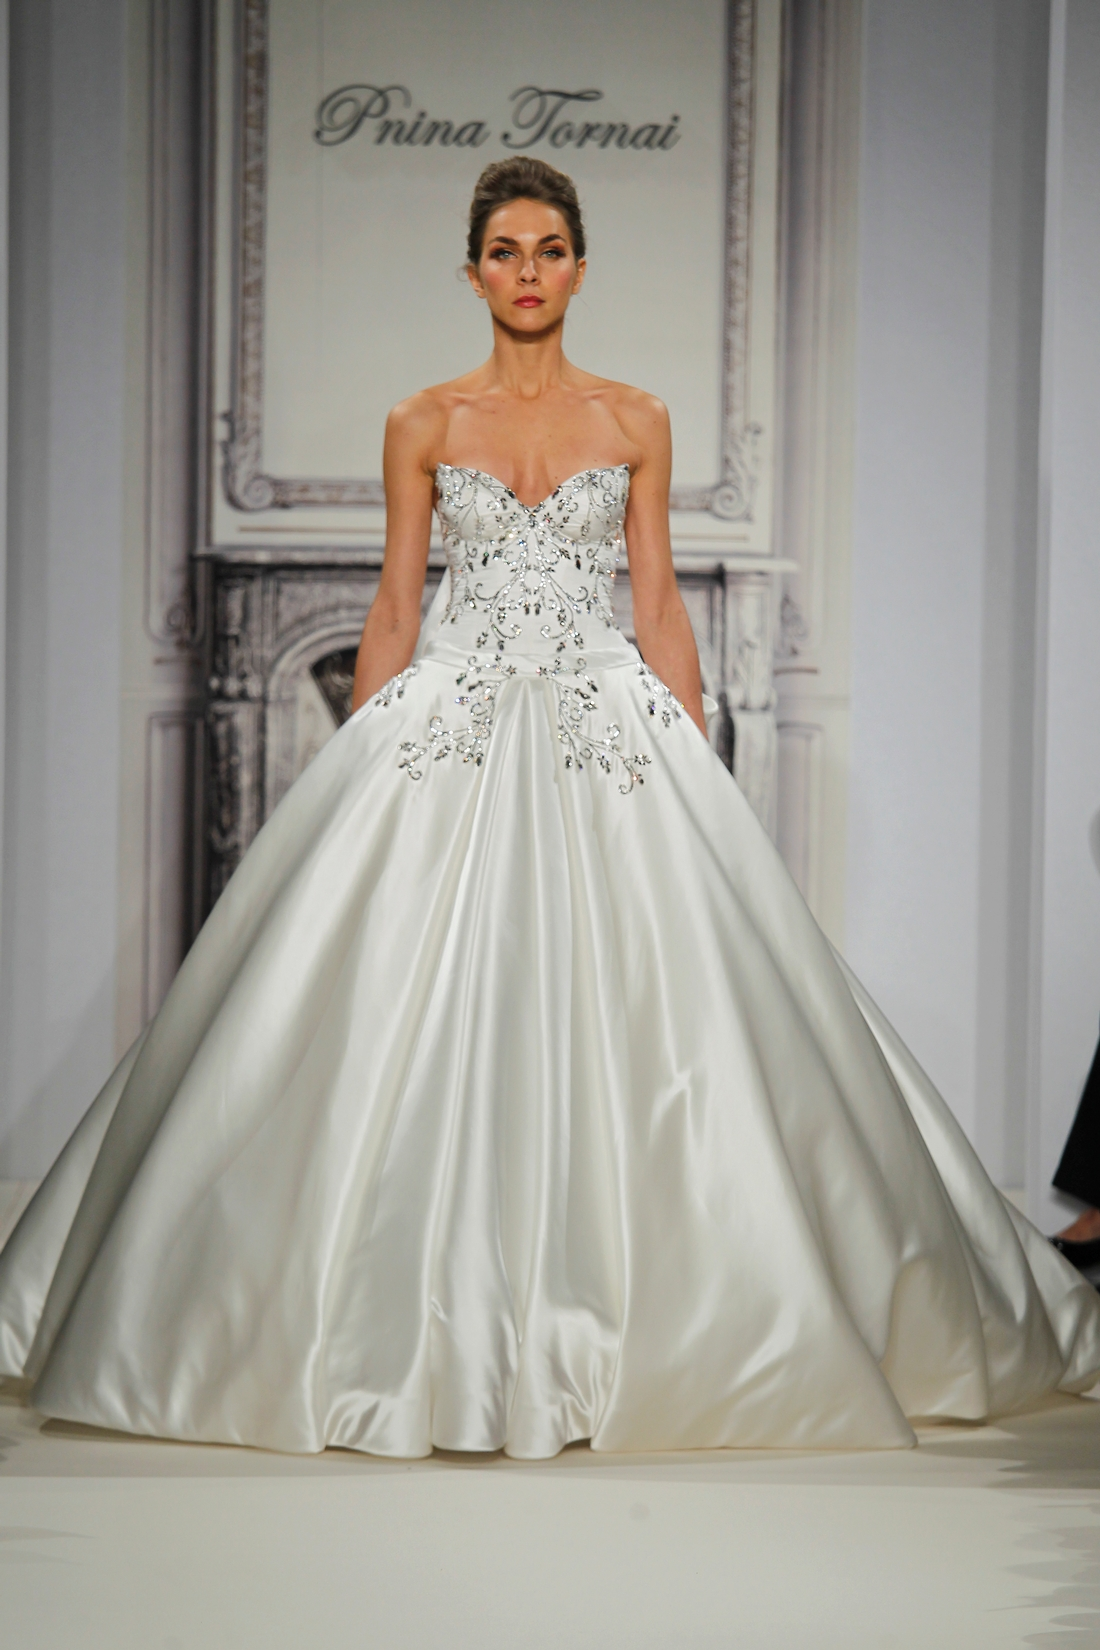 : panina wedding gowns